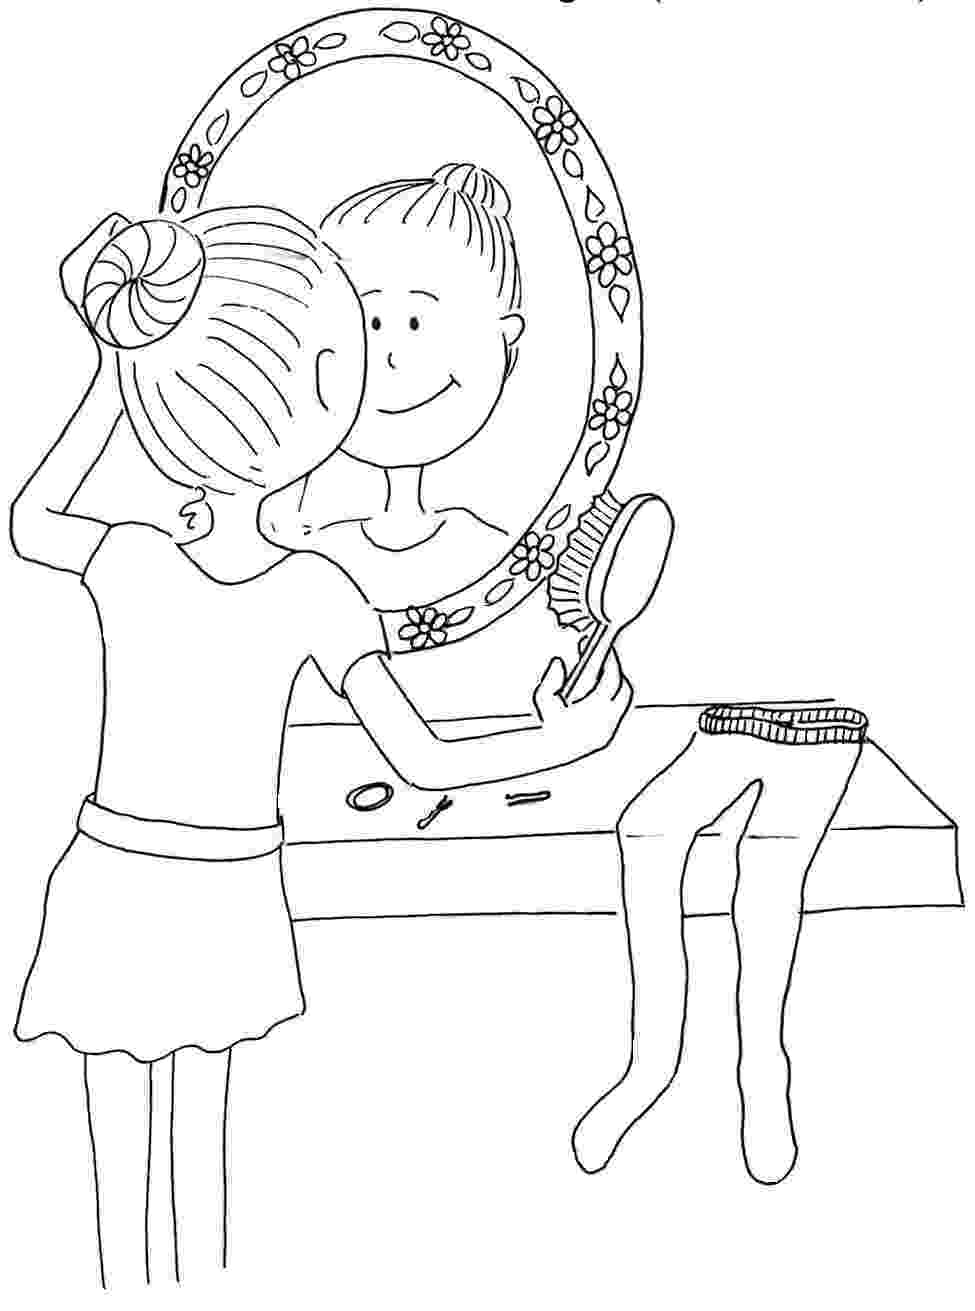 hair coloring pages 121 best images about coloring pages on pinterest hair coloring pages